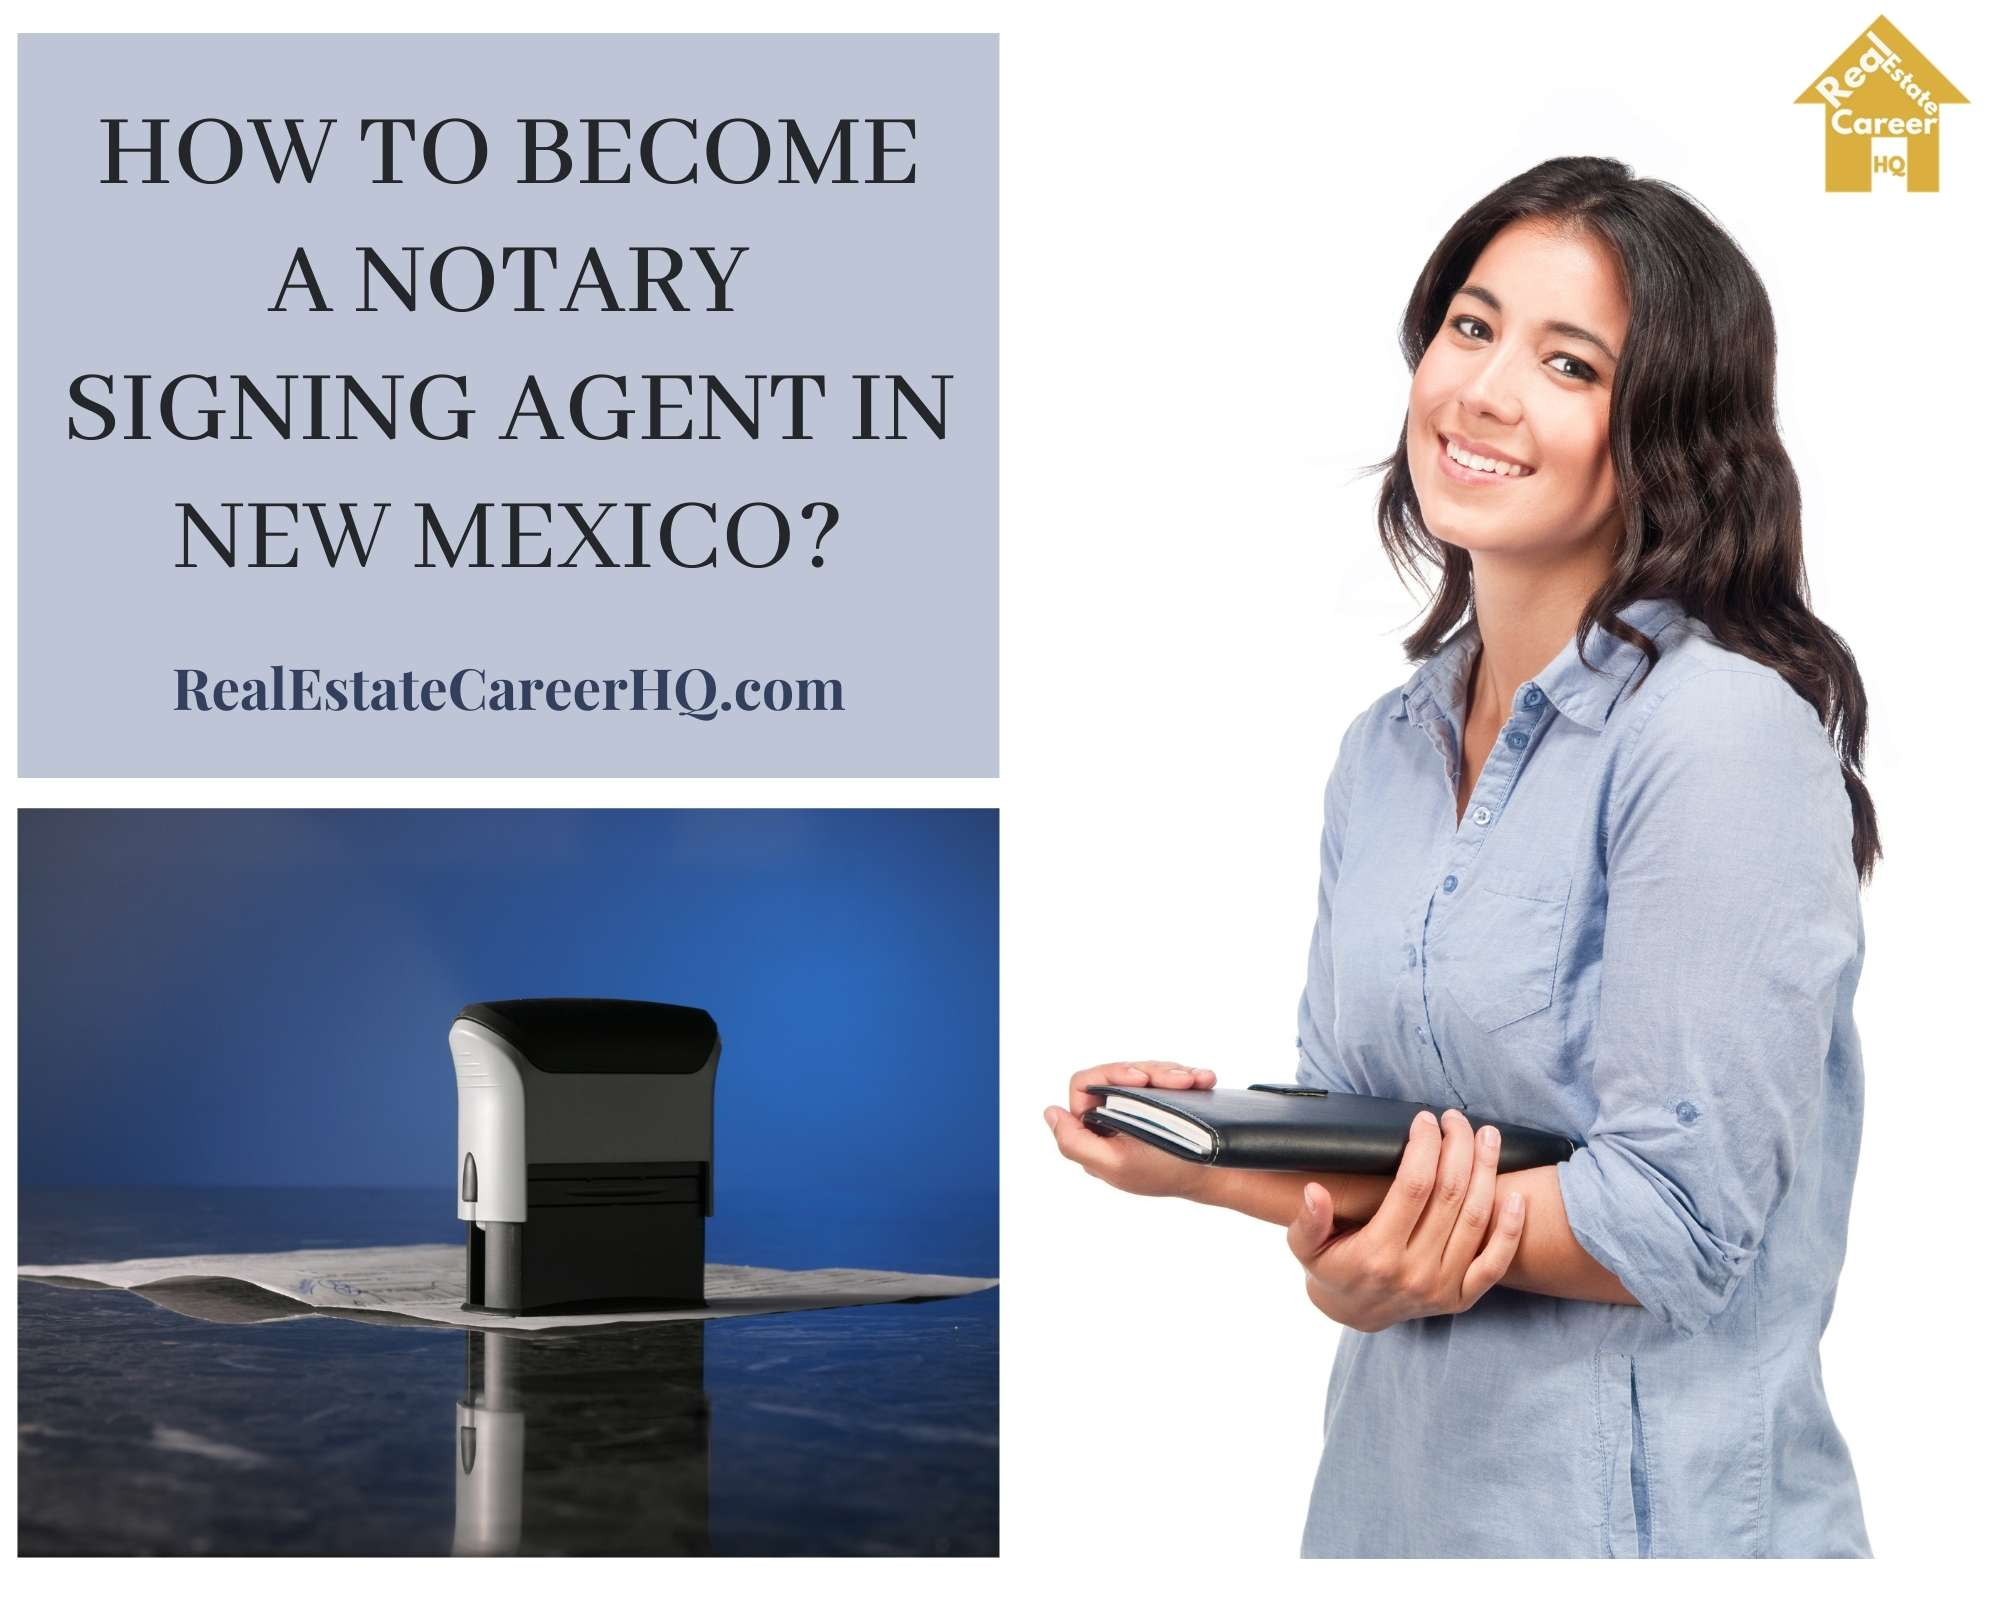 How to Become a Notary Signing Agent in New Mexico